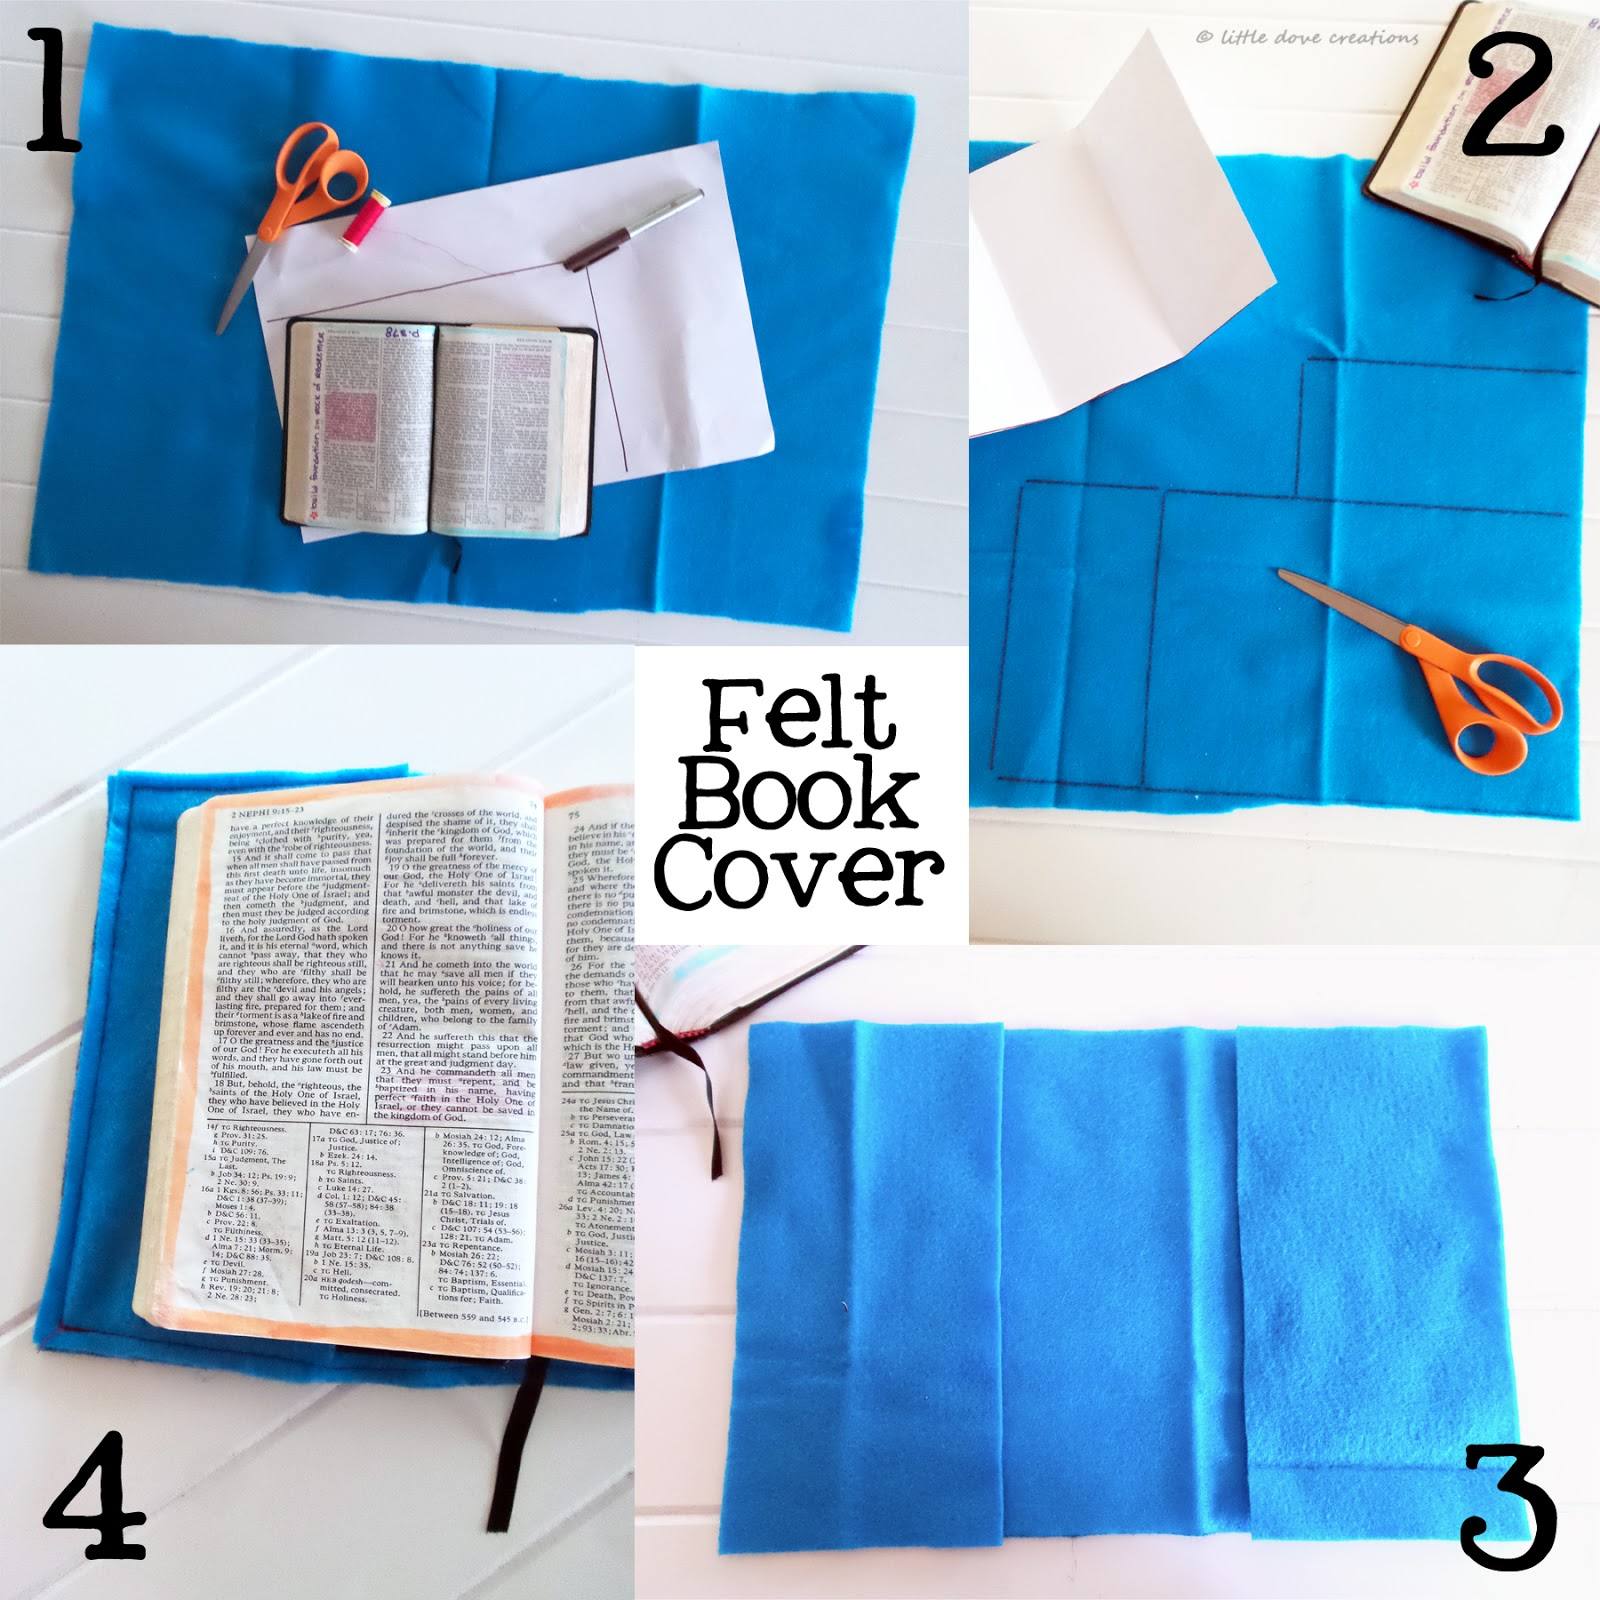 Felt Book Cover Diy ~ Diy felt book cover little dove